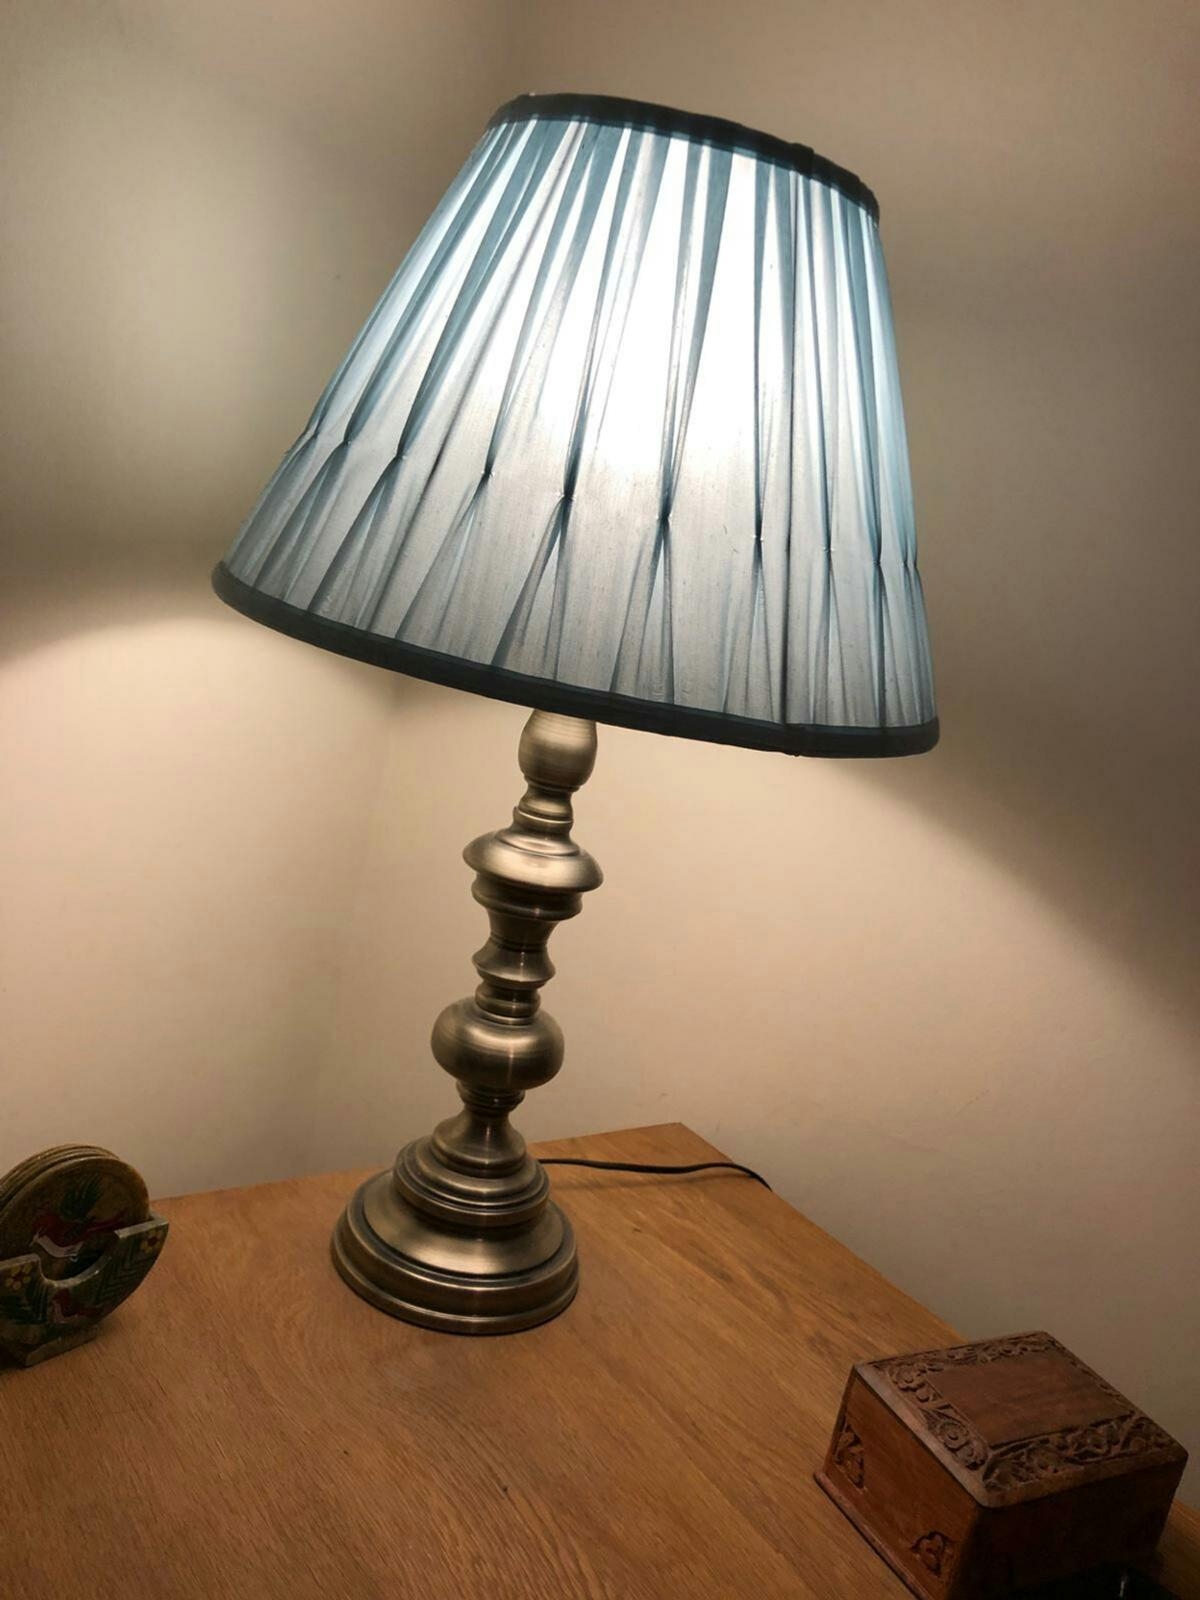 Dunelm Lamps In M46 Wigan For 30 00 For Sale Shpock